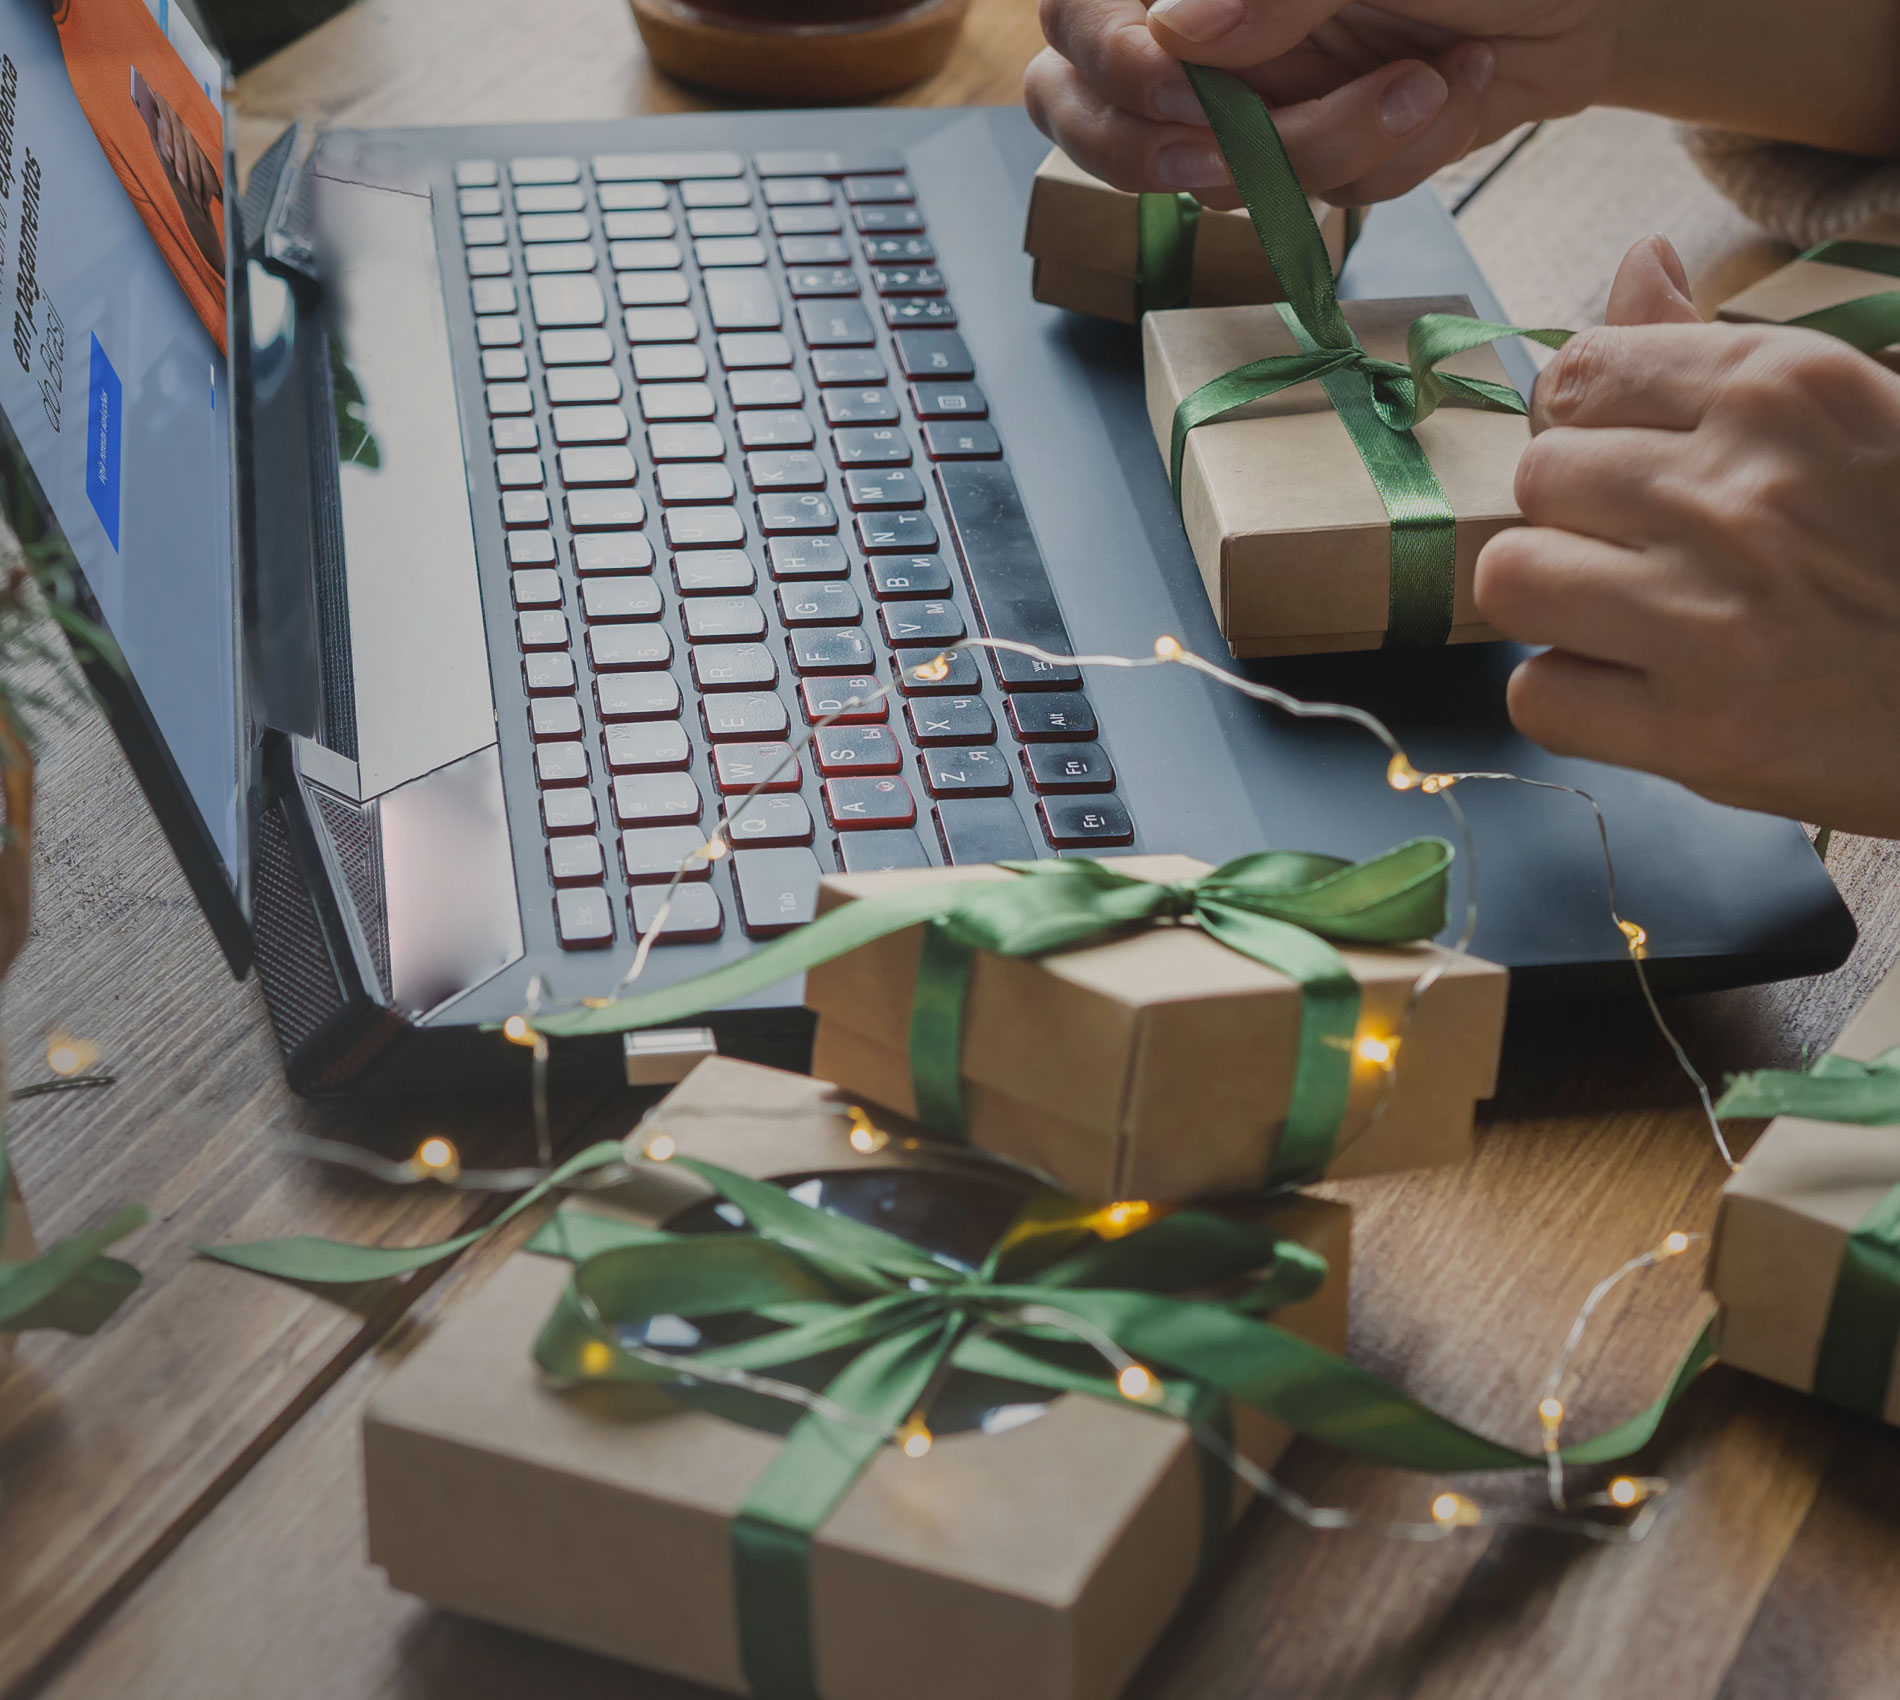 What to expect in Brazilian ecommerce this Christmas